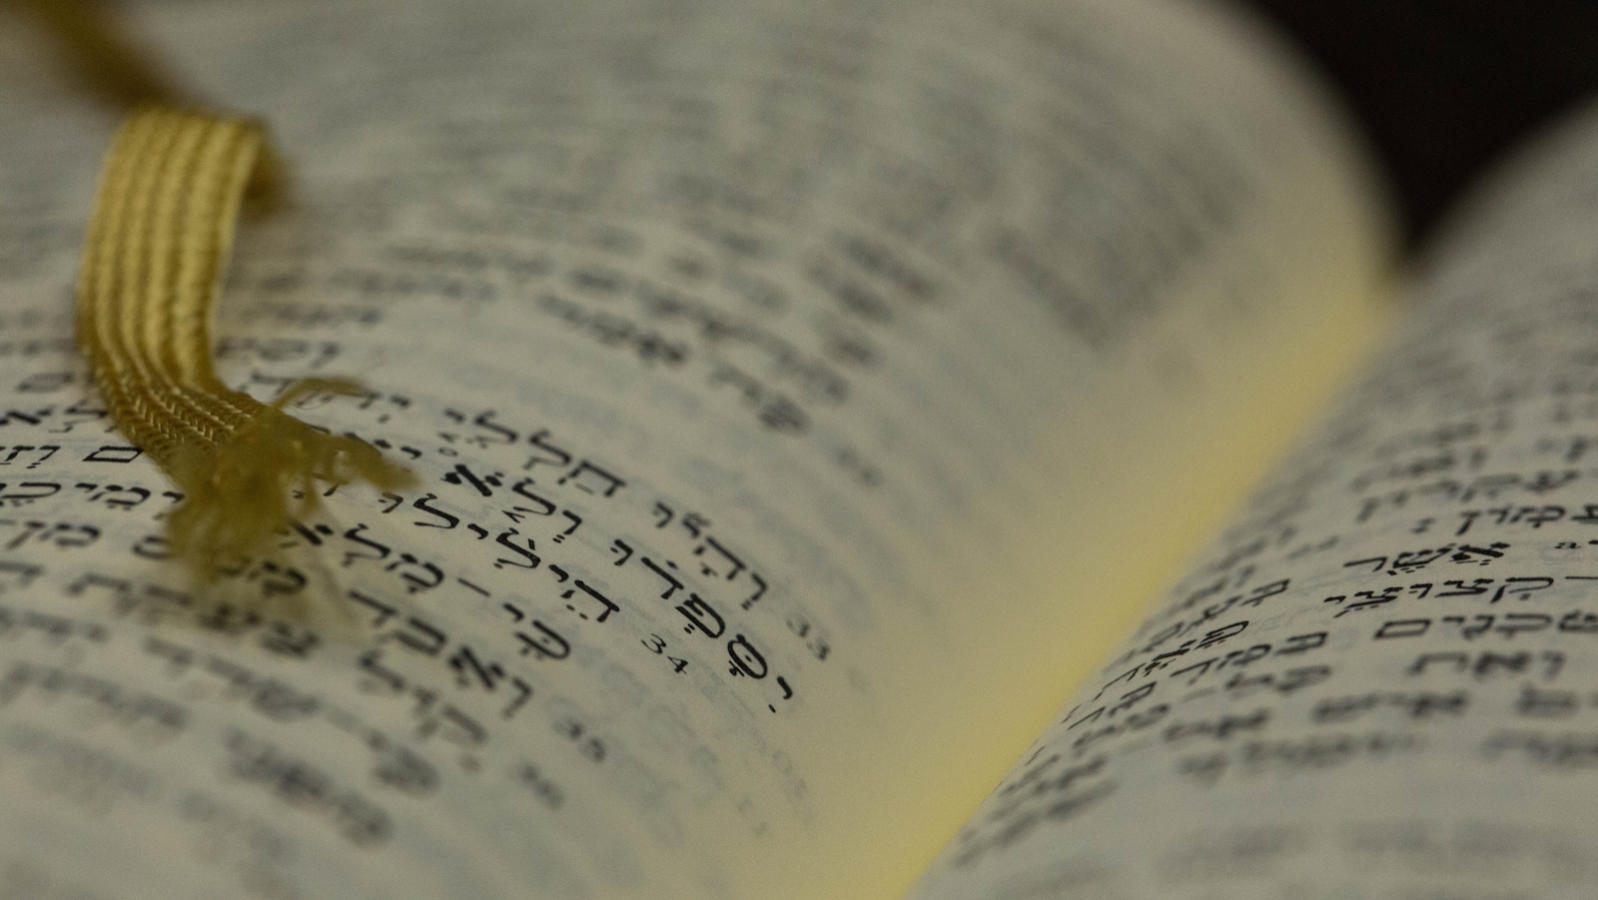 The Book of Chronicles | My Jewish Learning